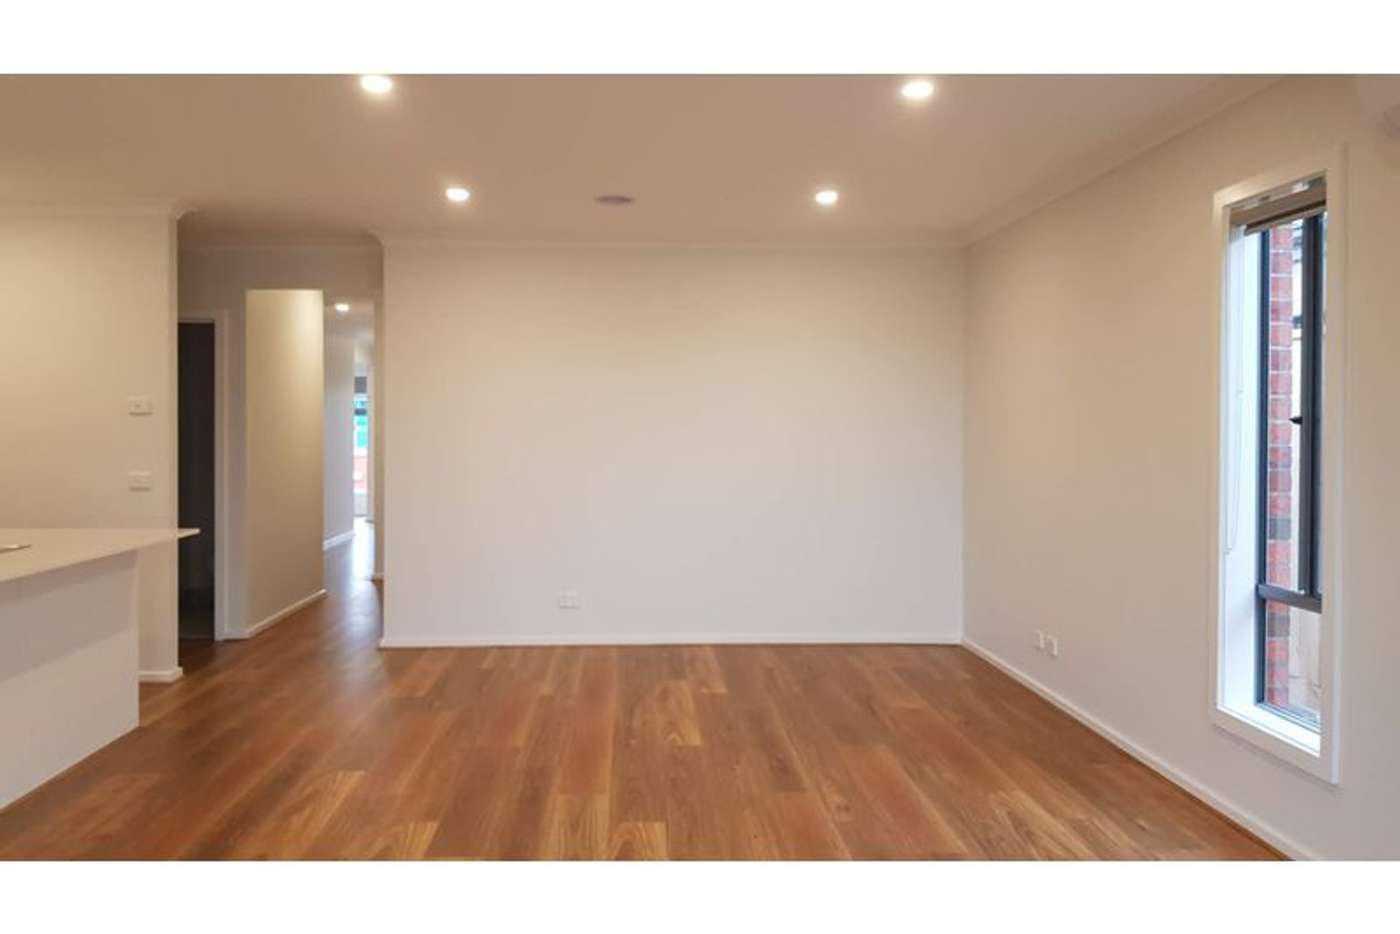 Sixth view of Homely house listing, 7 Gunnersburry Road, Wyndham Vale VIC 3024